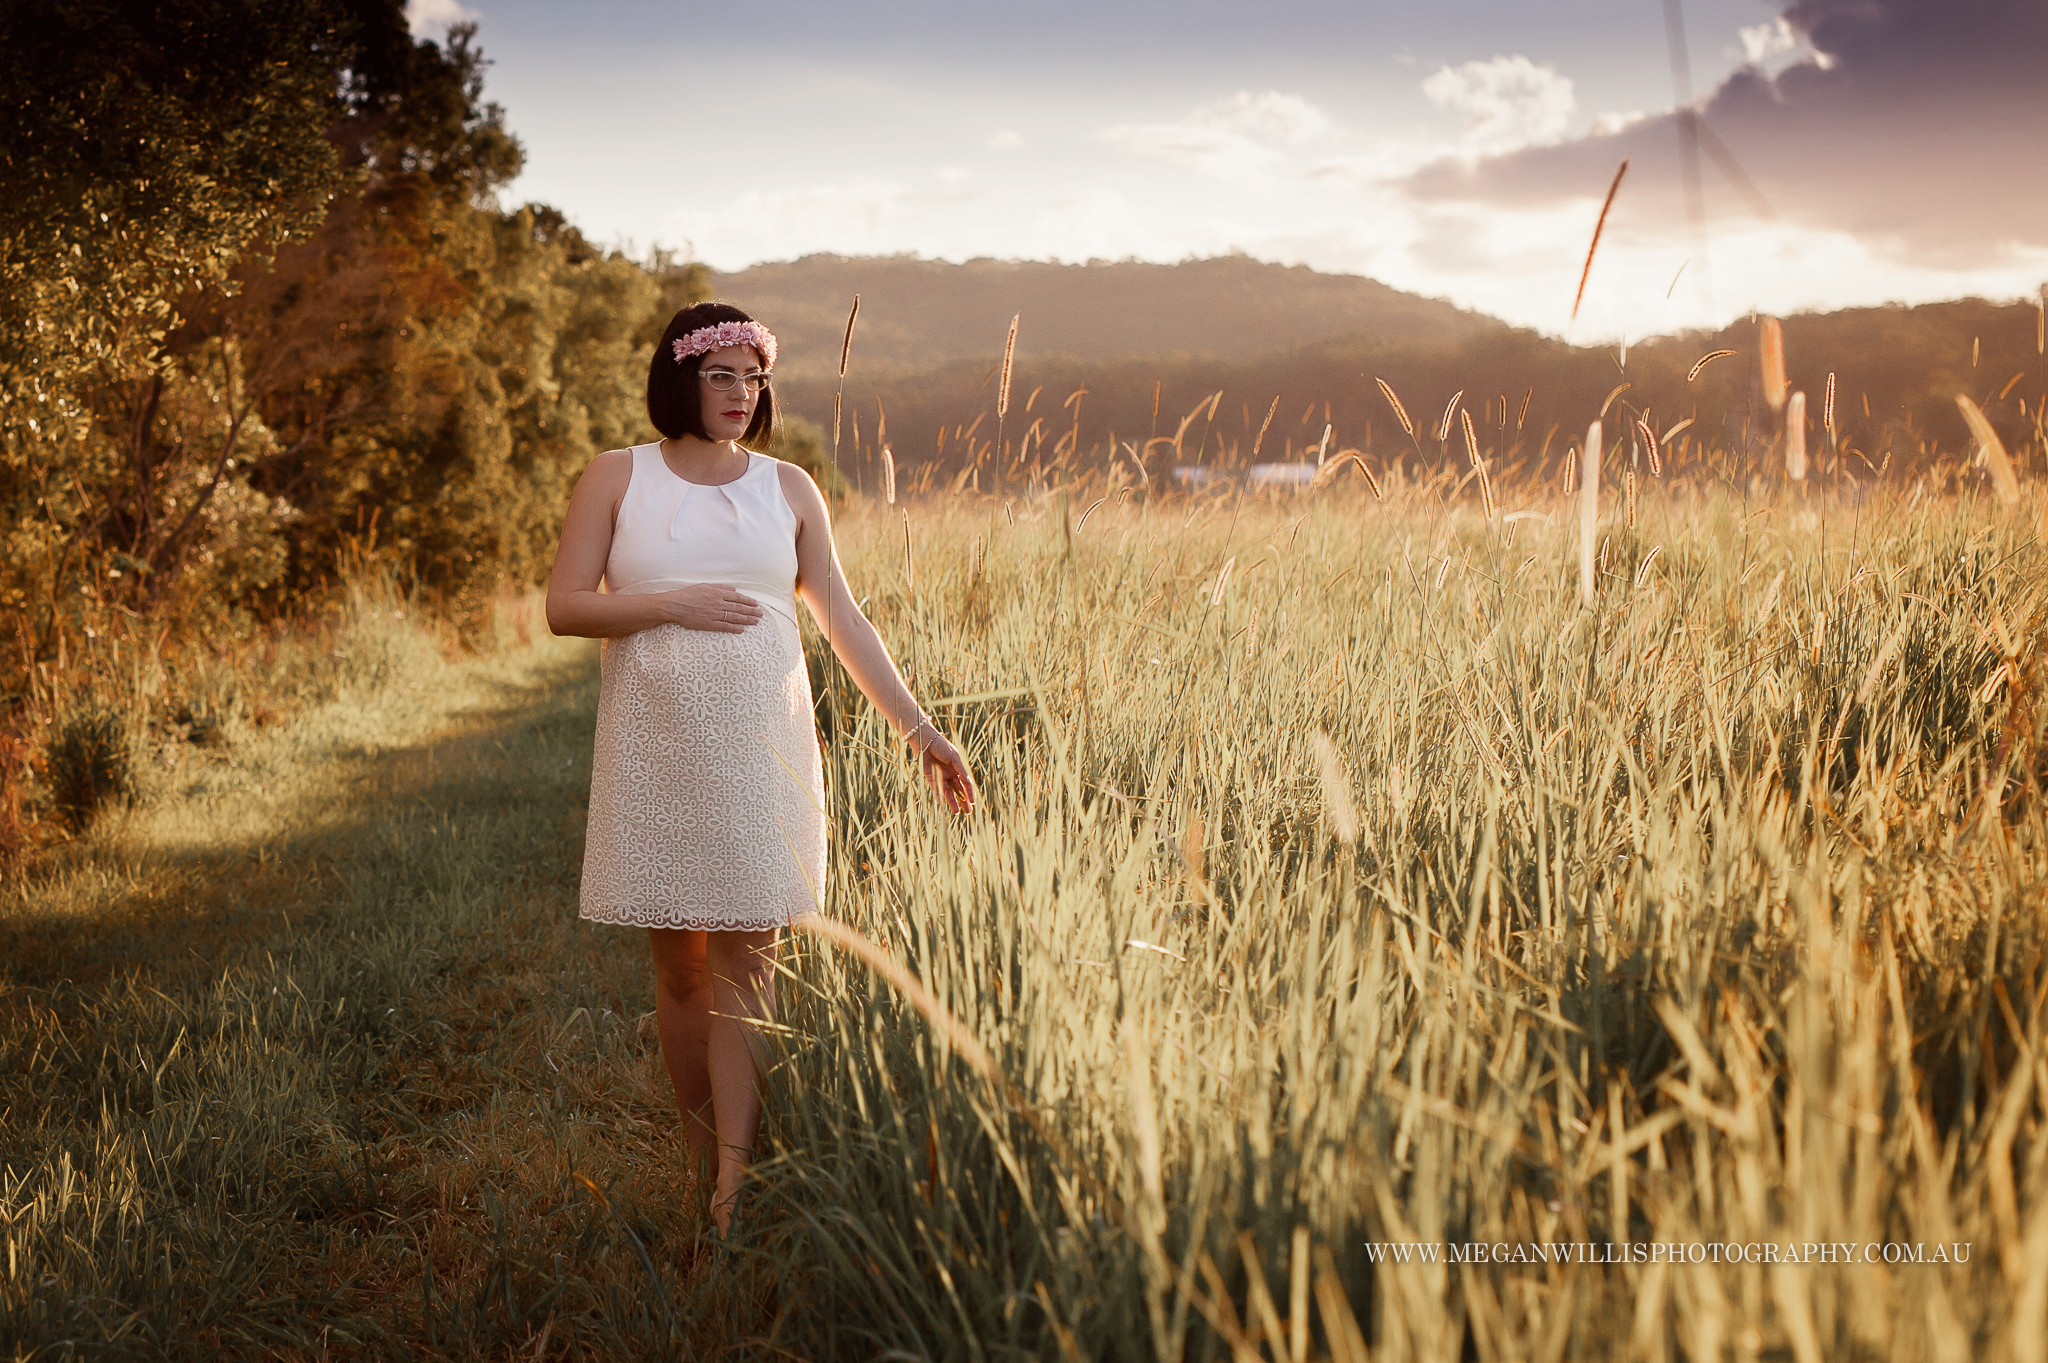 Amy // 35 weeks // July 2015 maternity session